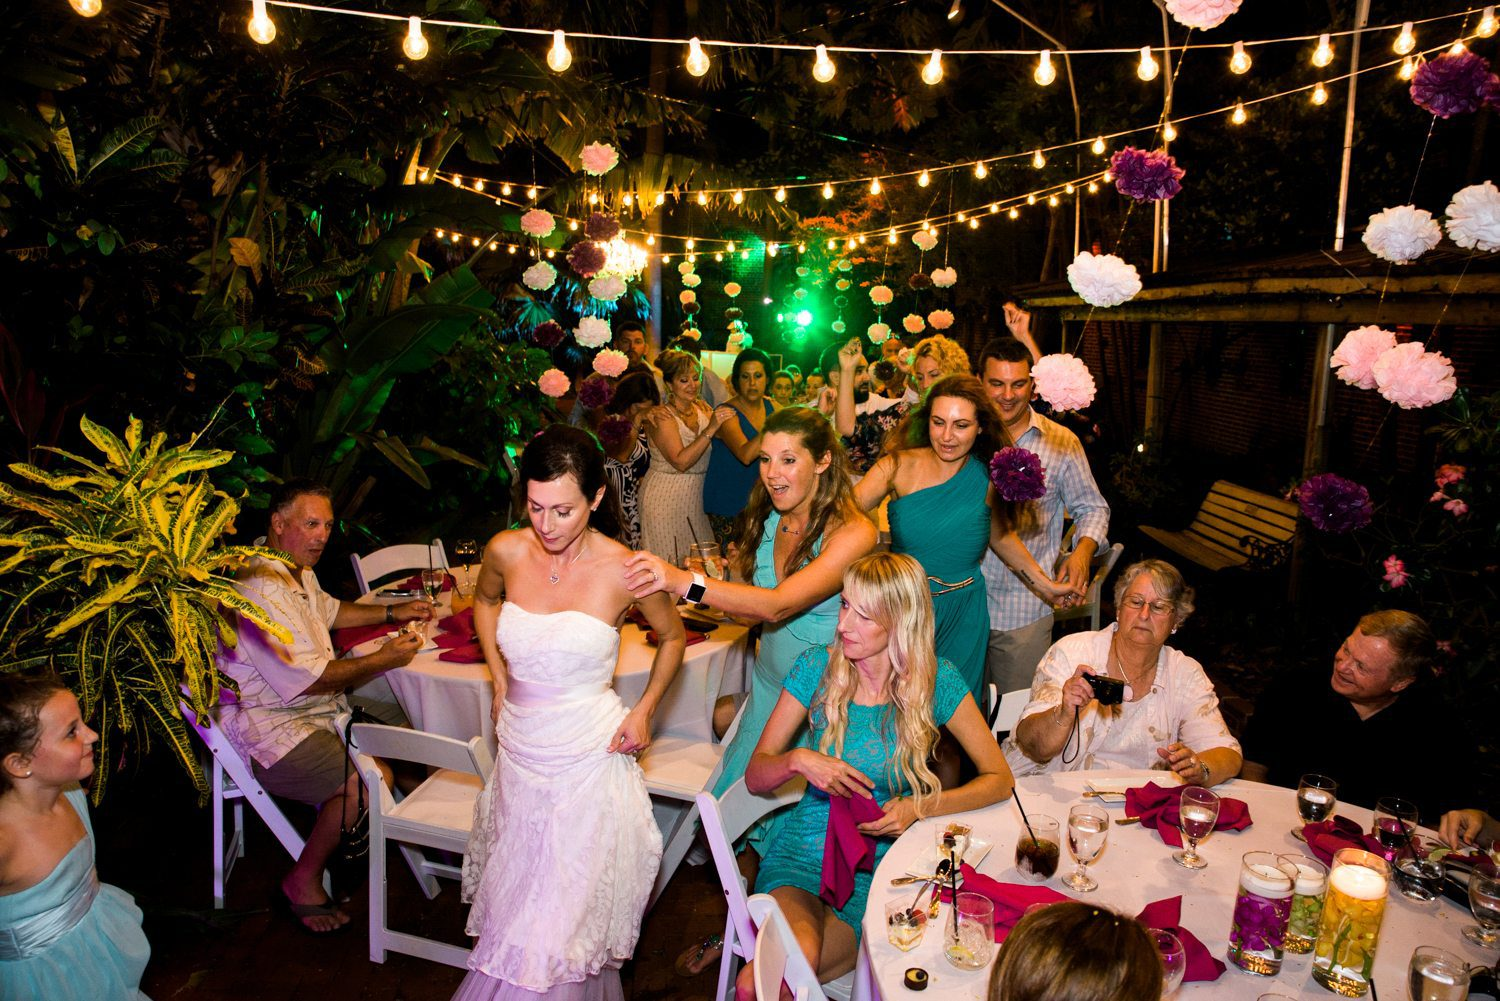 Tracey Joe Key West Garden Club 42 - Tracey & Joe | Key West Wedding Photographer | Key West Garden Club